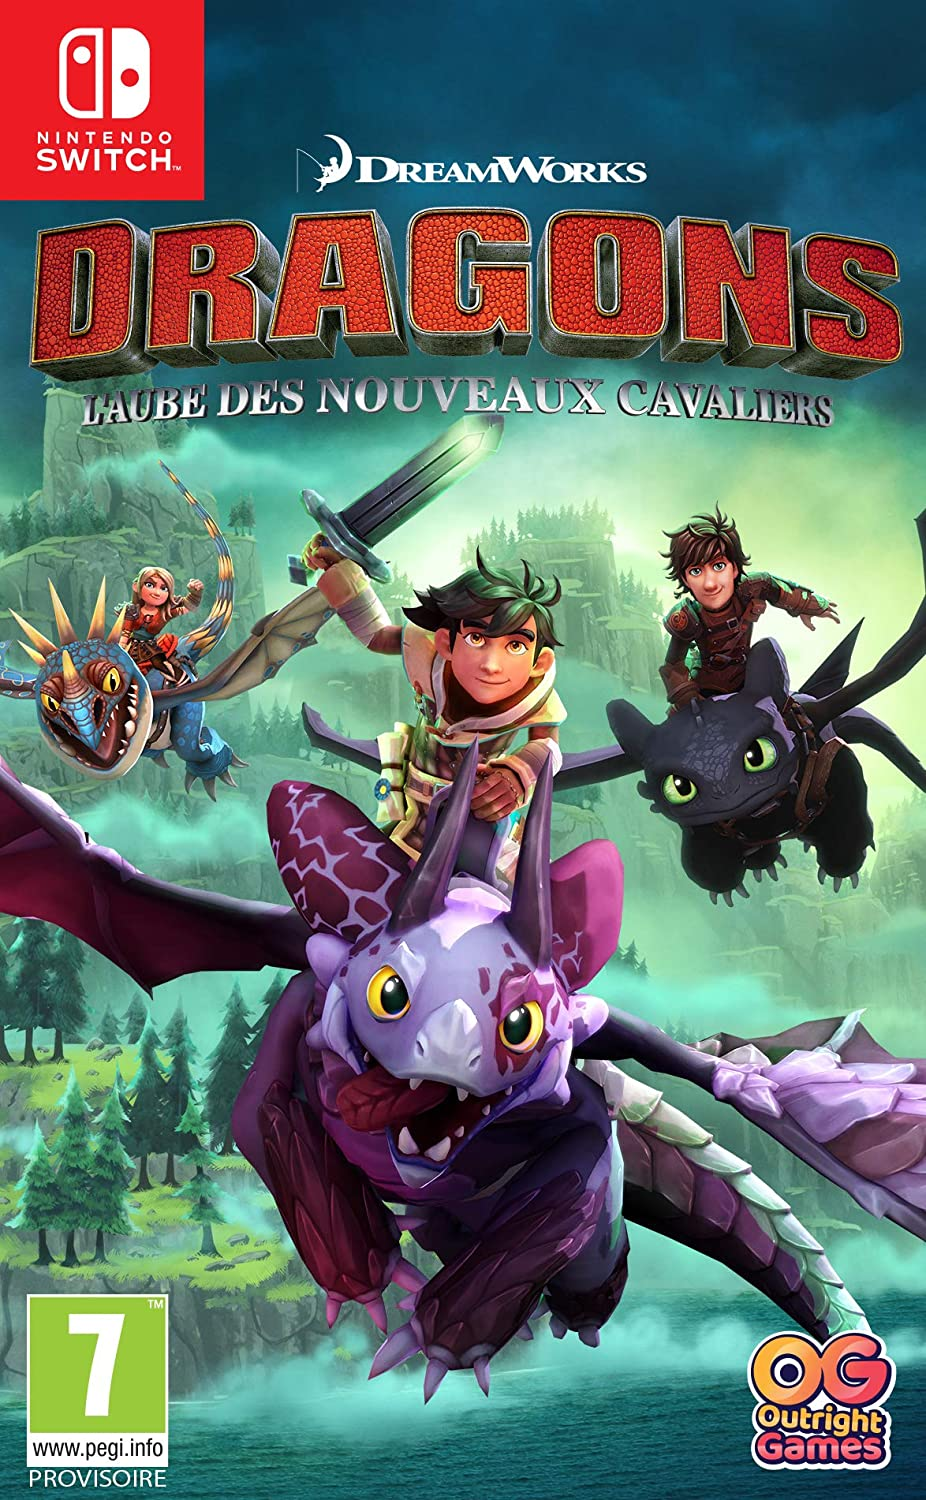 BANDAI NAMCO Entertainment Dragons Dawn of New Riders, Nintendo Switch vídeo - Juego (Nintendo Switch, Nintendo GameCube, Acción / Aventura): Amazon.es: Videojuegos